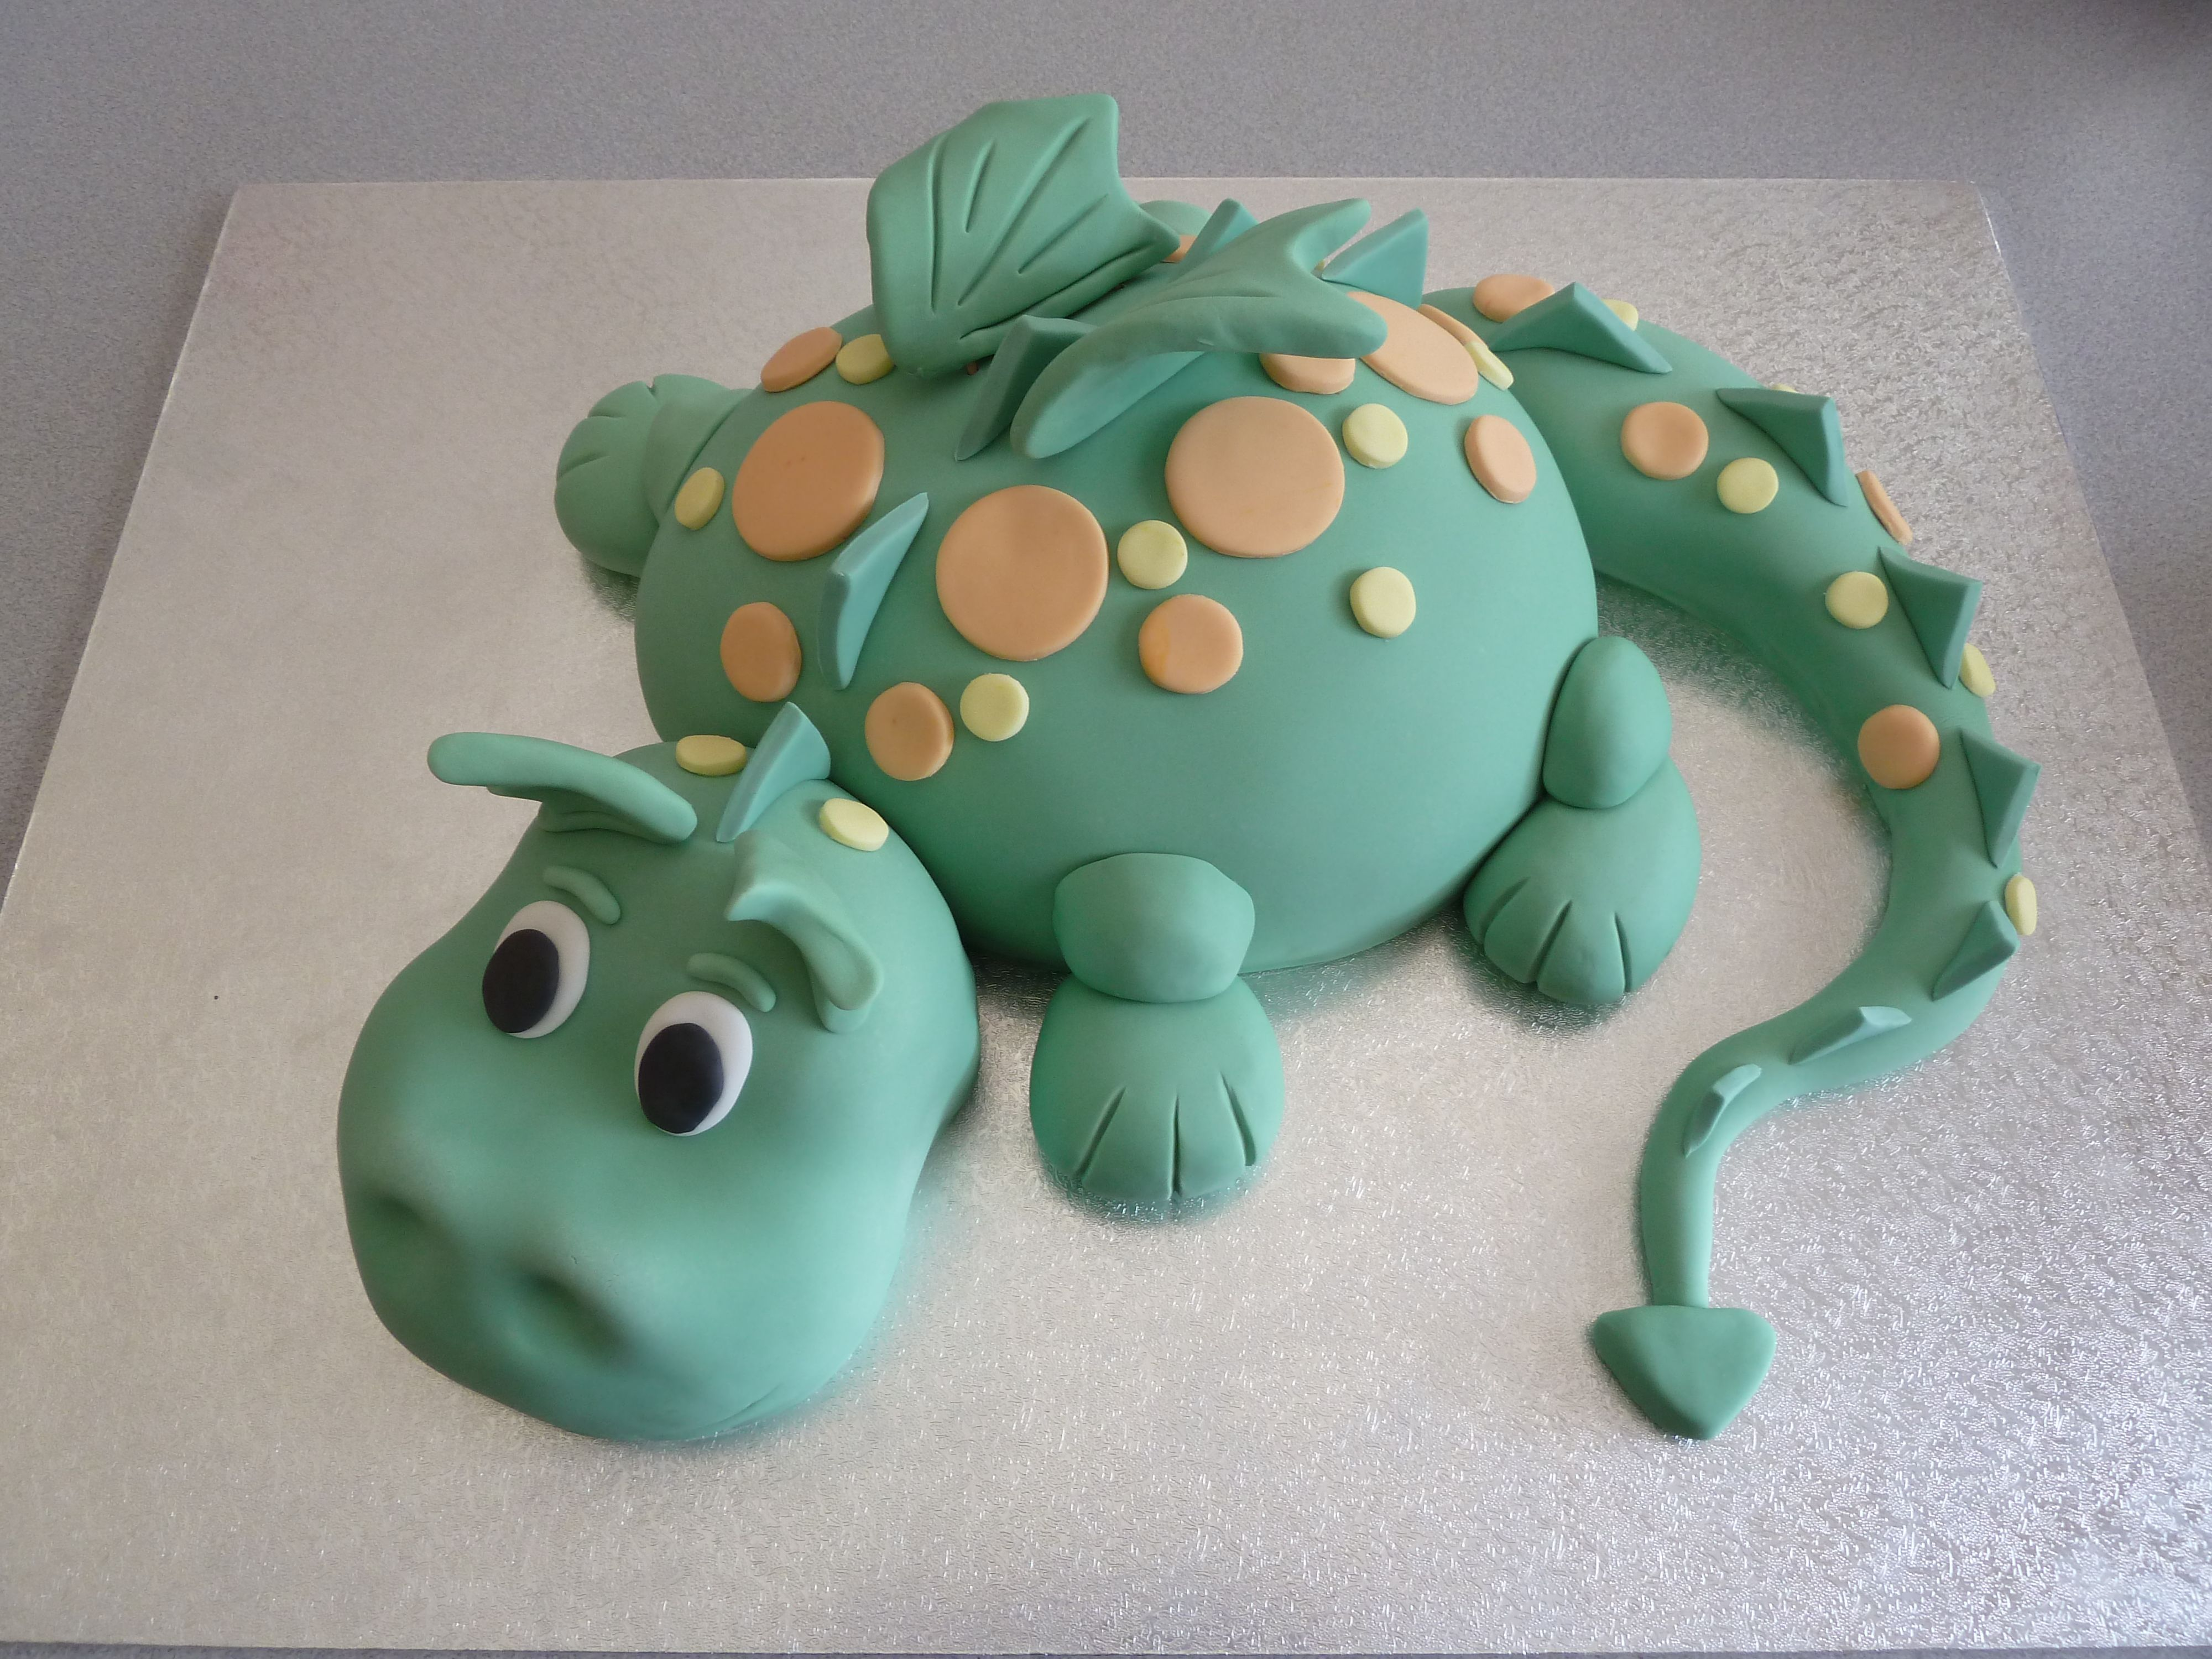 This Is My Favourite Kids Cake A Cute Little Green Dragon It Was A